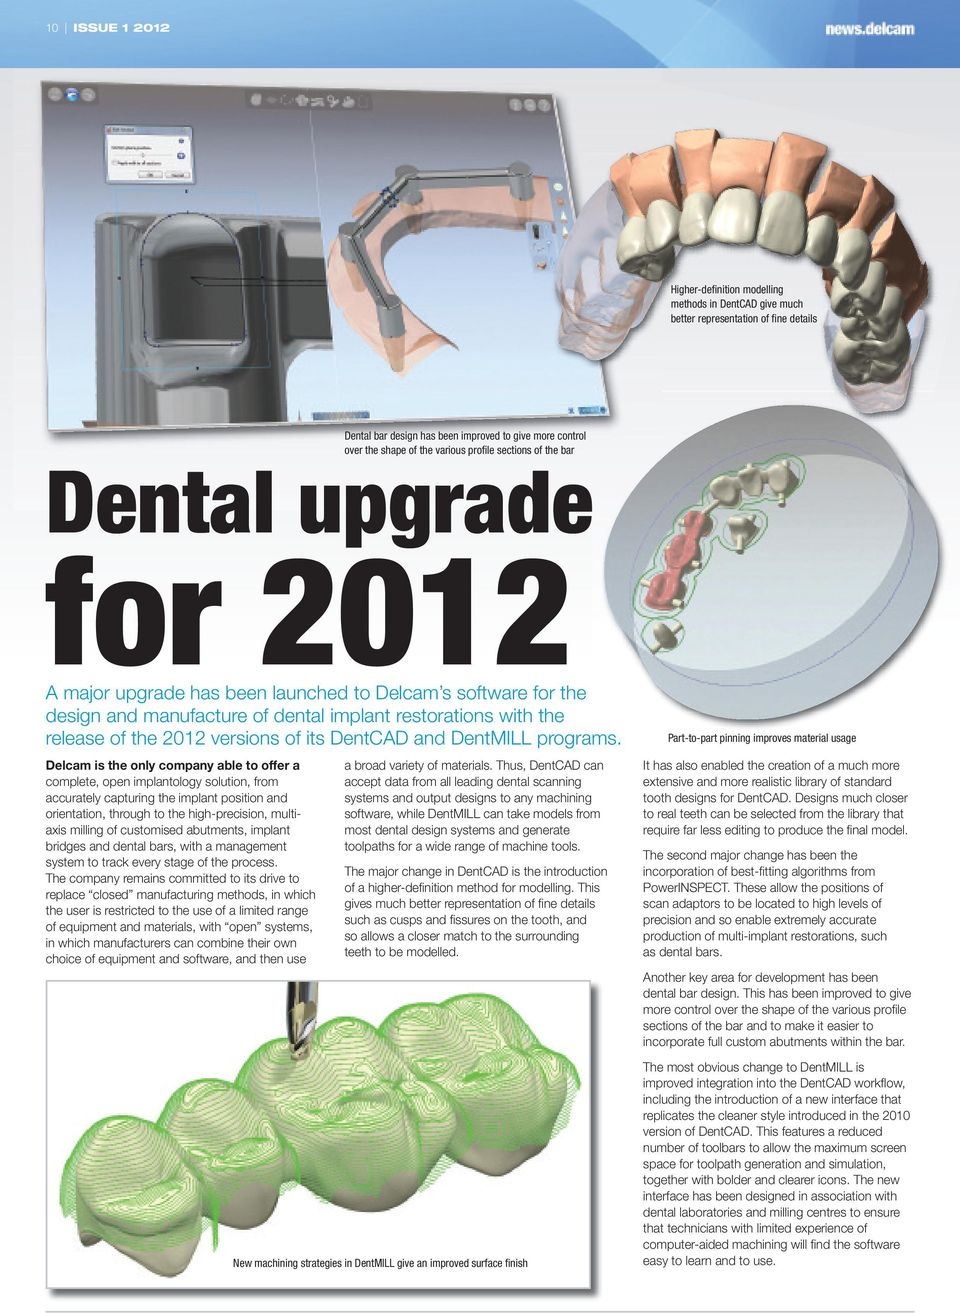 versions of its DentCAD and DentMILL programs.